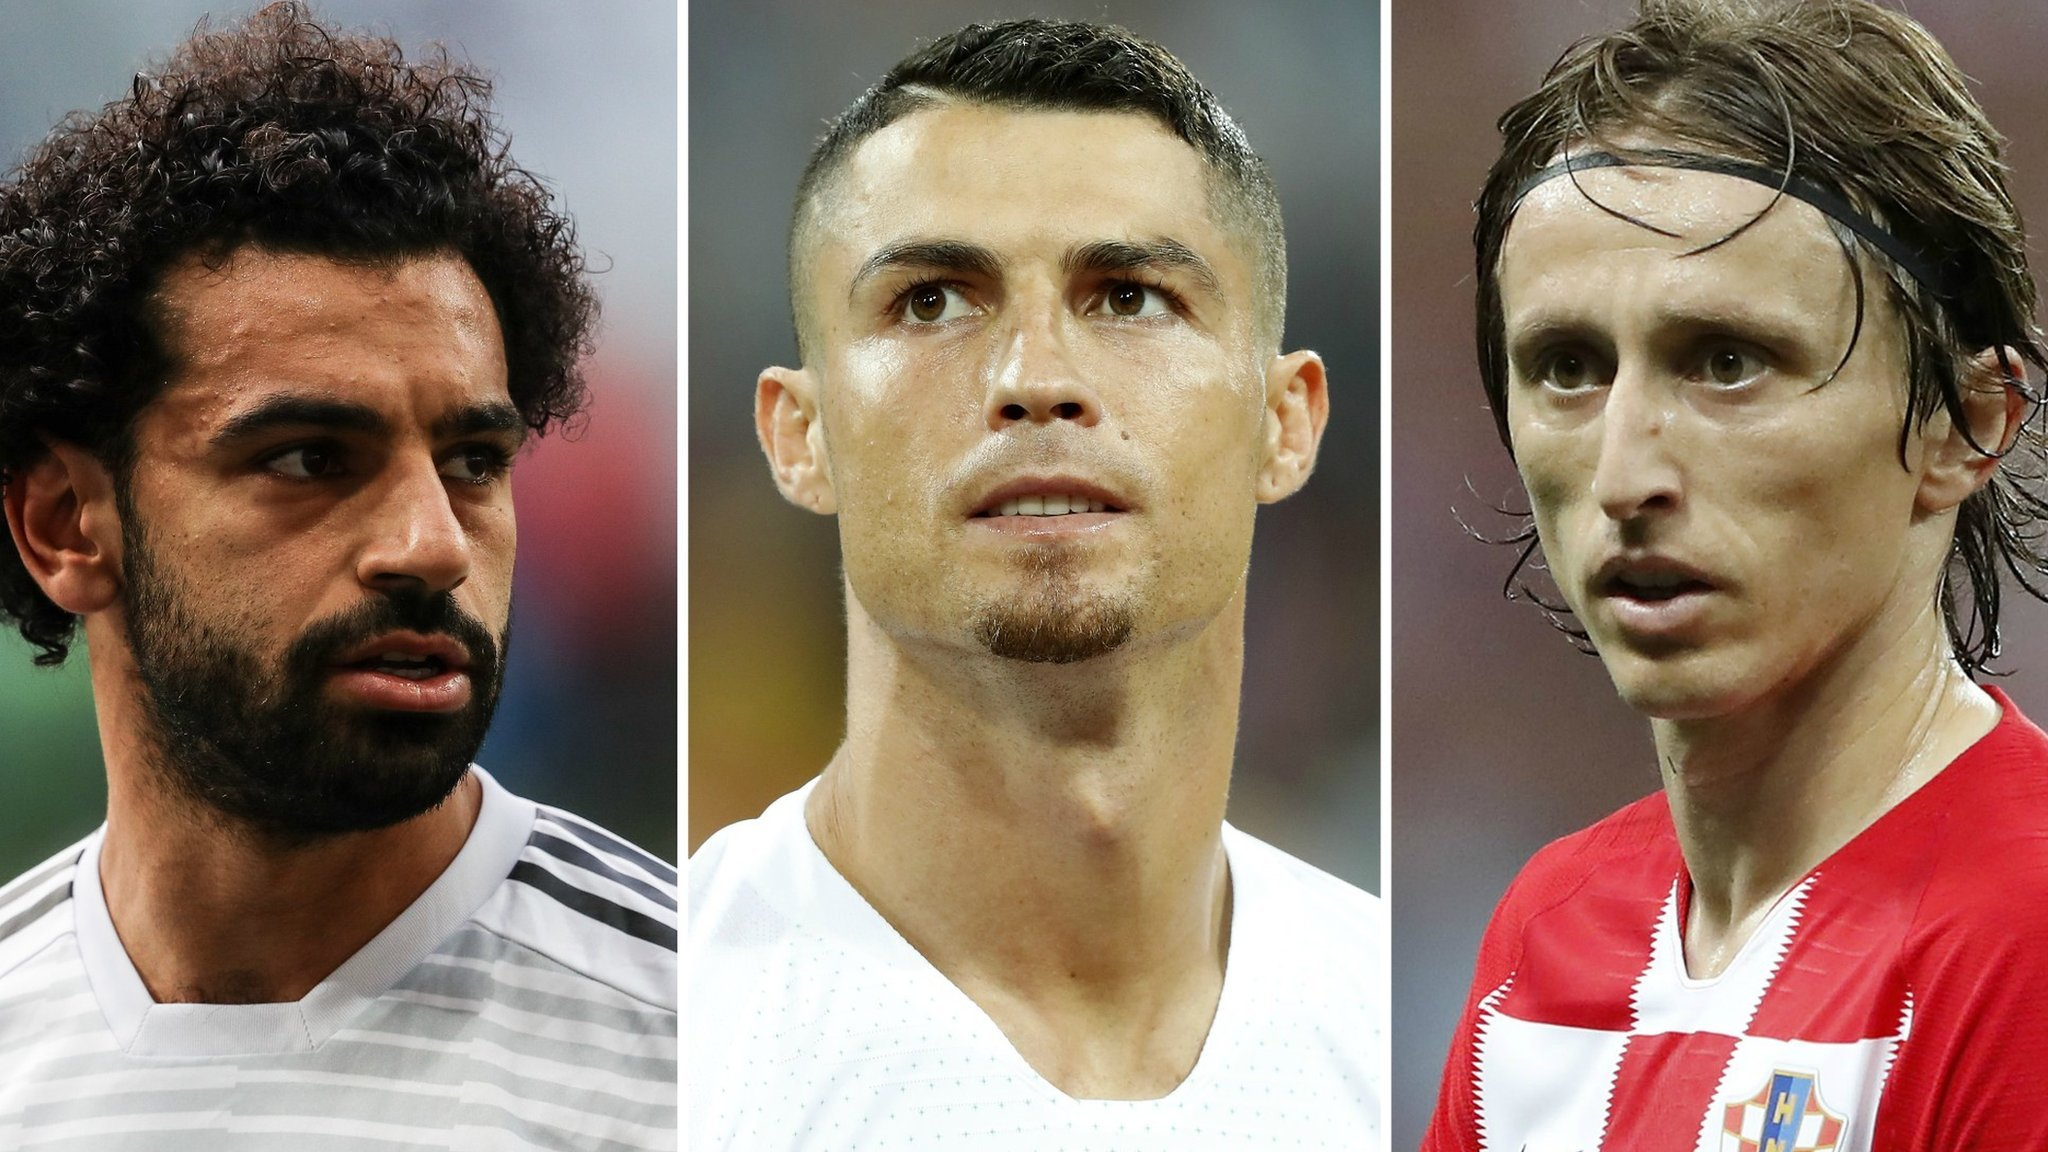 Salah, Ronaldo or Modric? Fifa to announce award winners on Monday